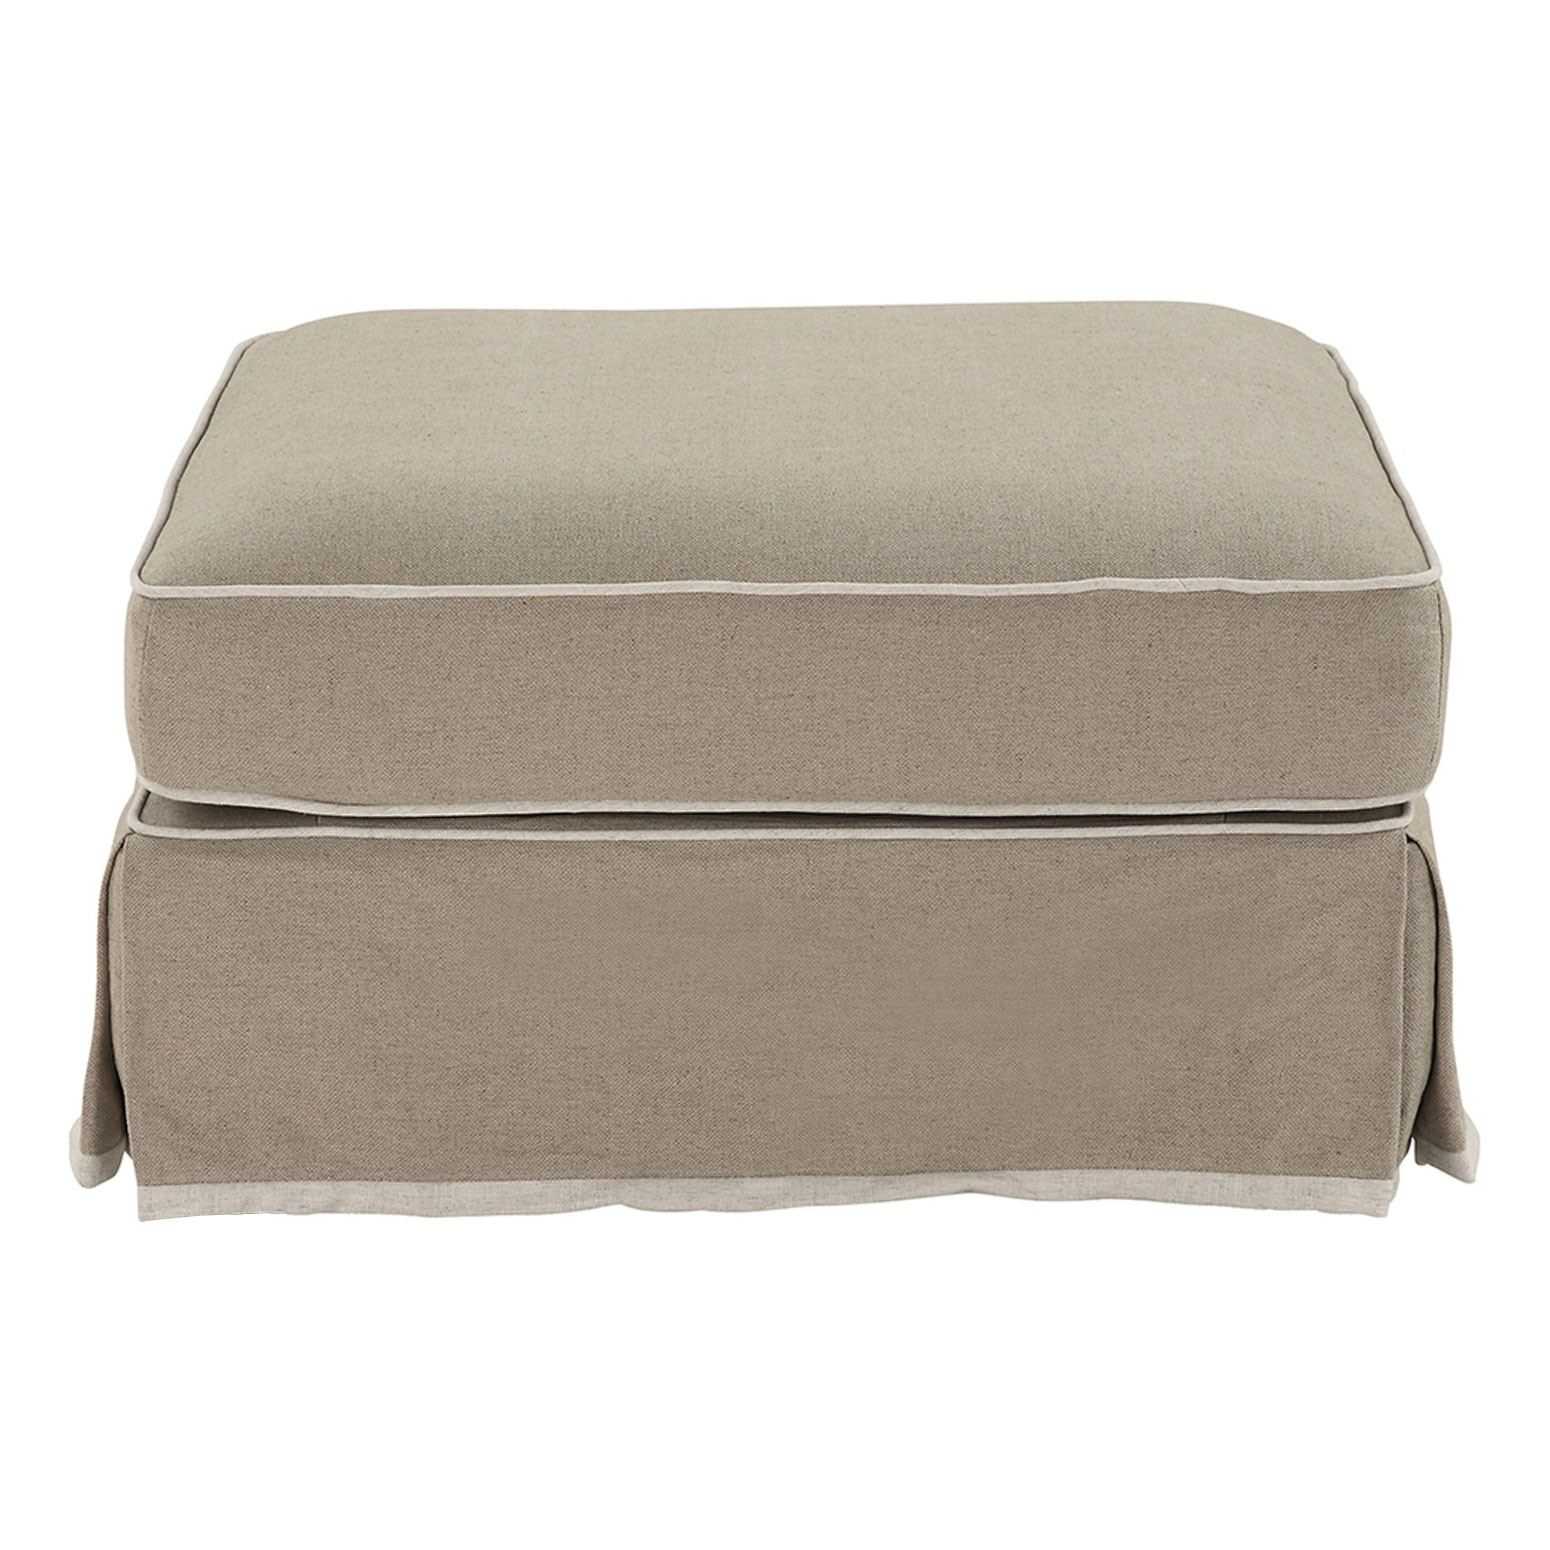 Noosa Fabric Ottoman Slipcover (Cover Only), Beige with White Piping